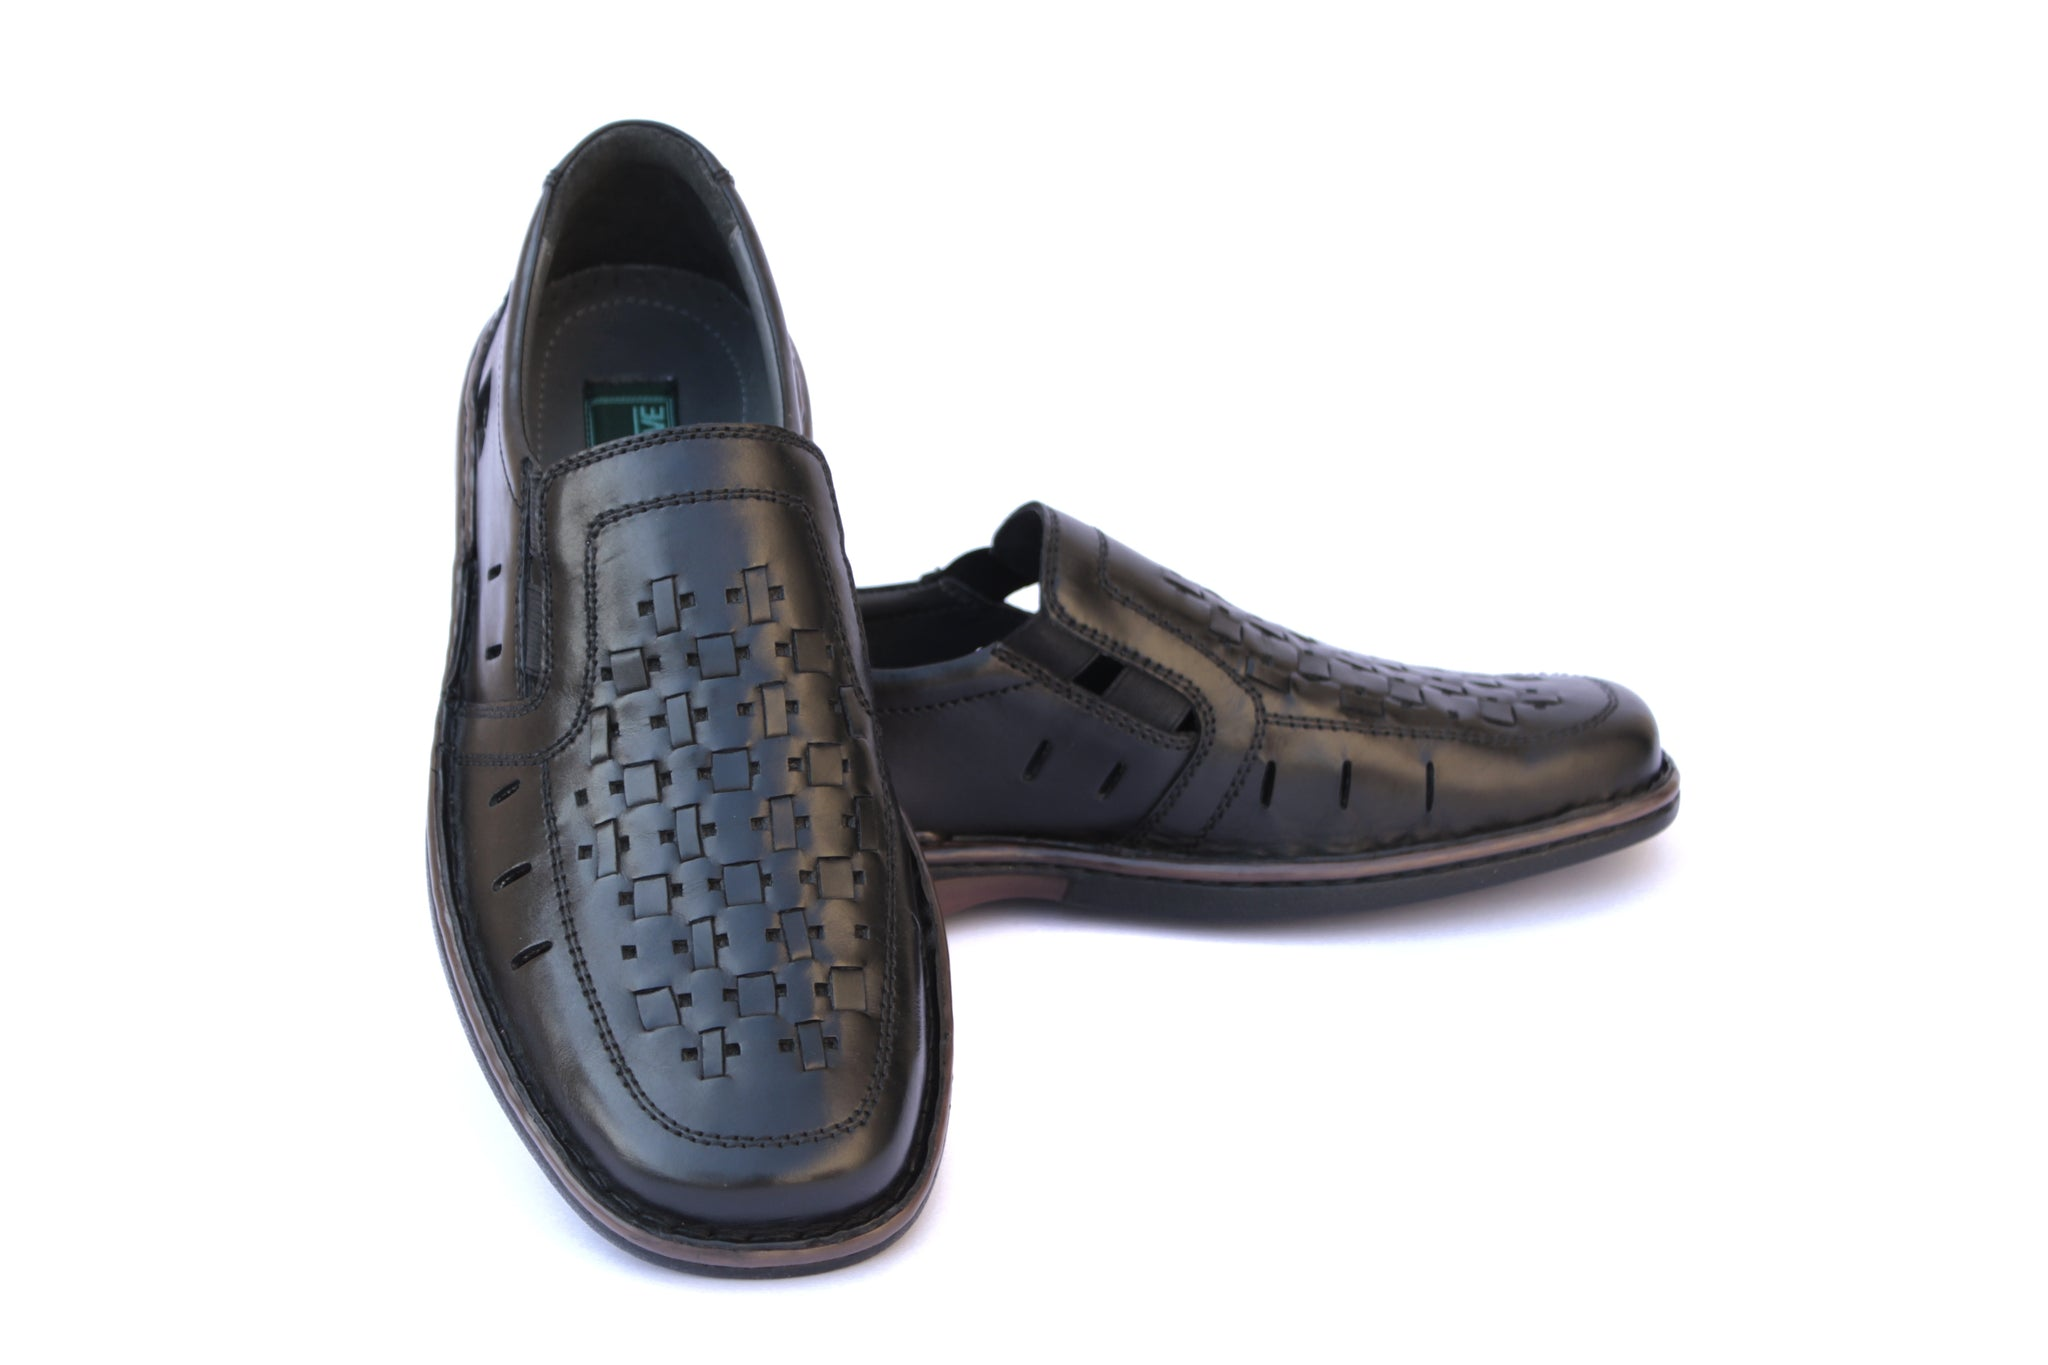 Overdrive 9 2 5 Pirate Black Anti-Perspiration Slip on